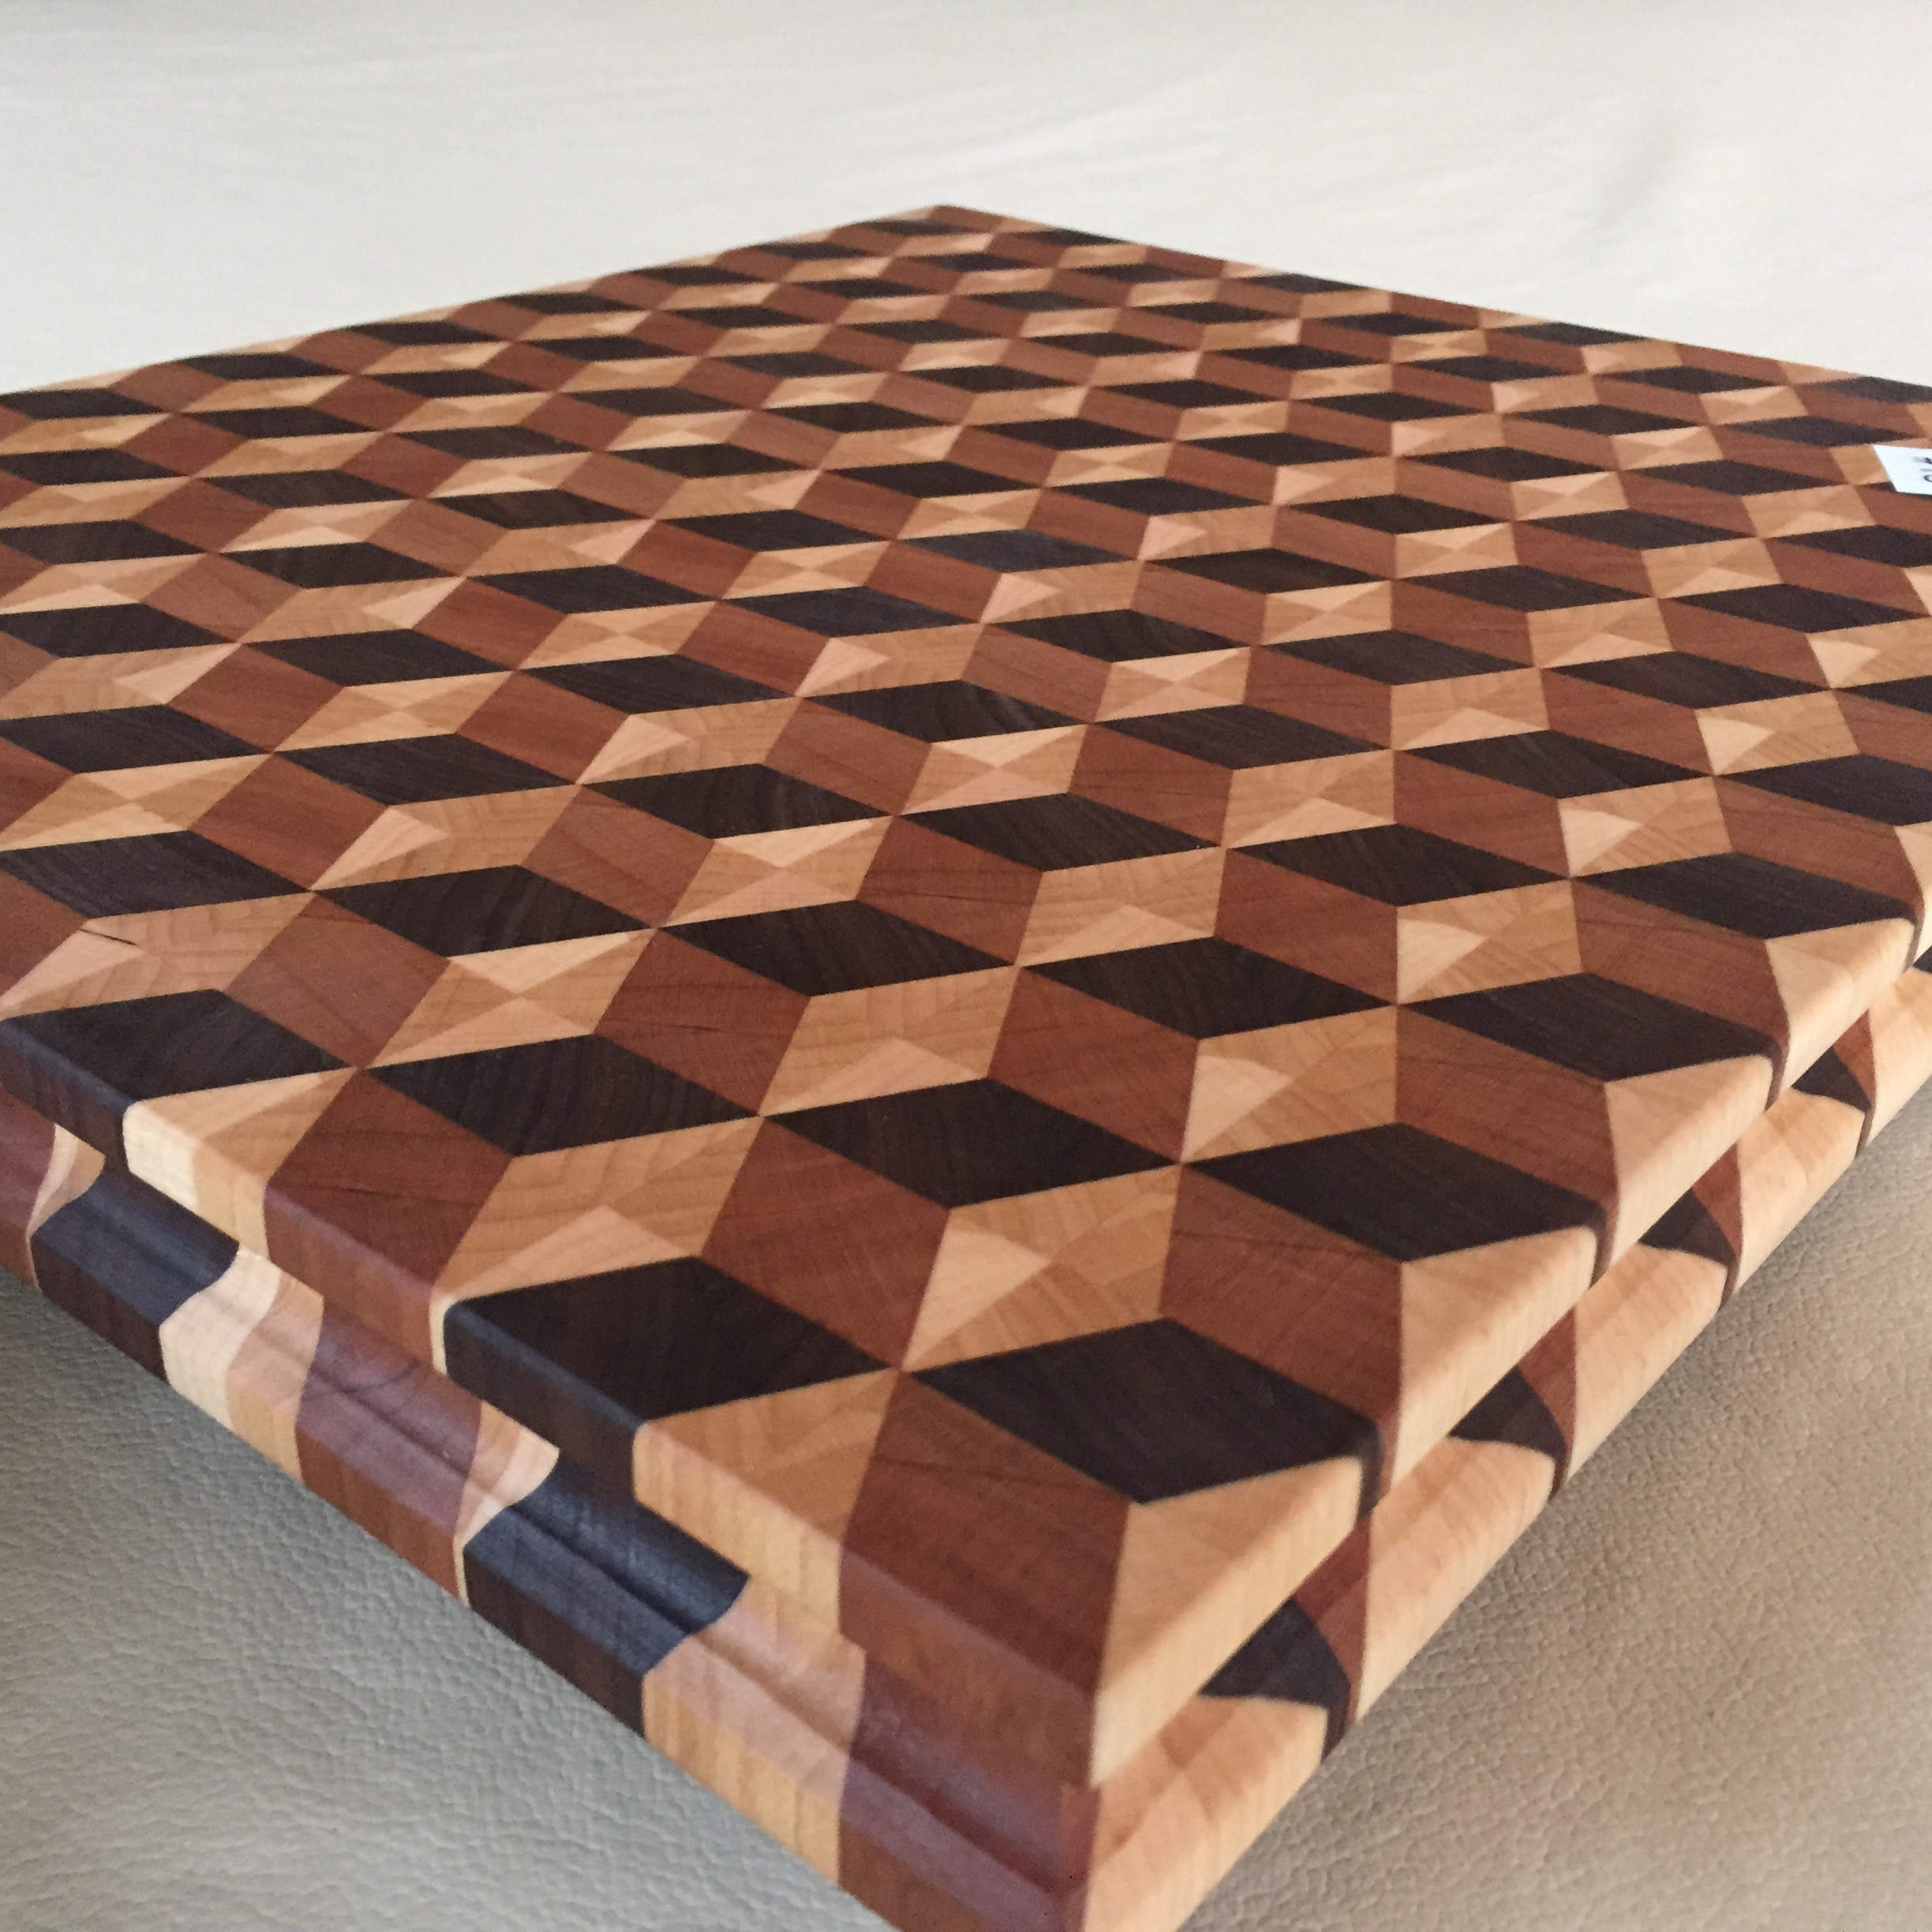 #15 Rectangular serving/cutting board 3D illusion